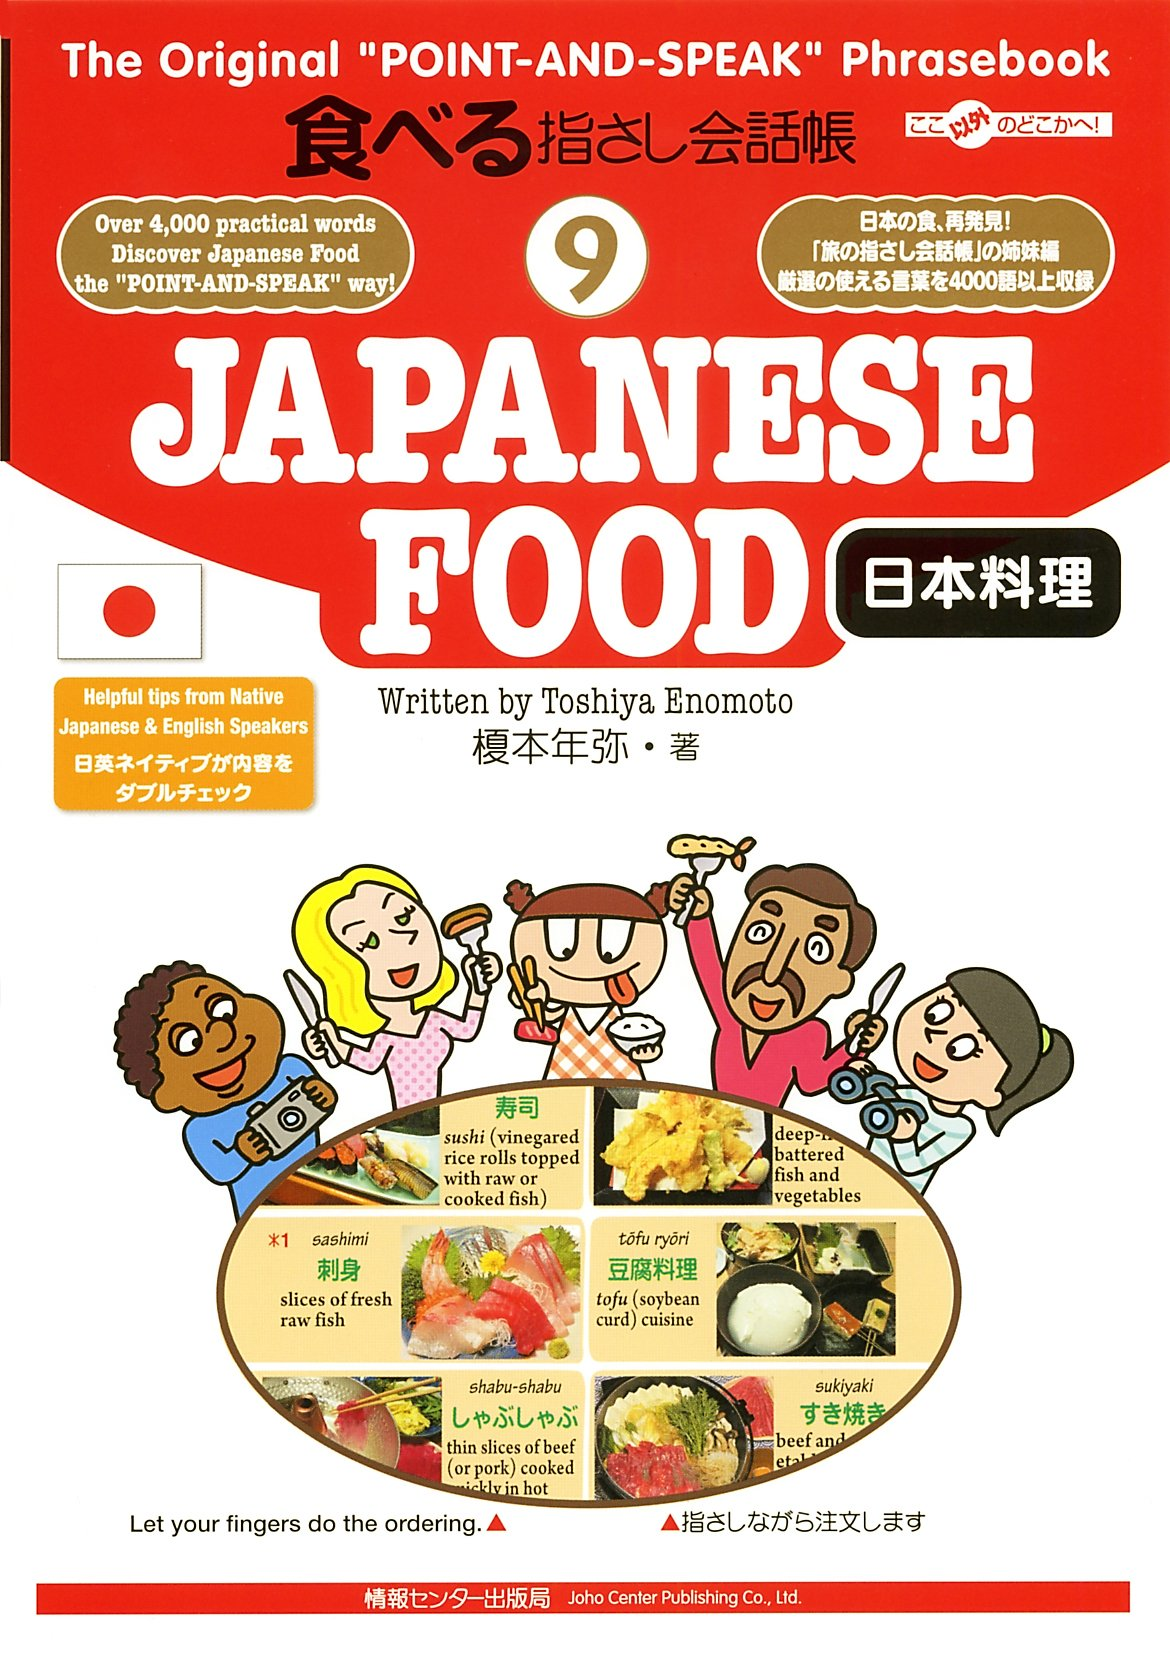 YUBISASHI JAPANESE FOOD (The Original ''POINT-AND-SPEAK'' Phrasebook) by Joho Center Publishing